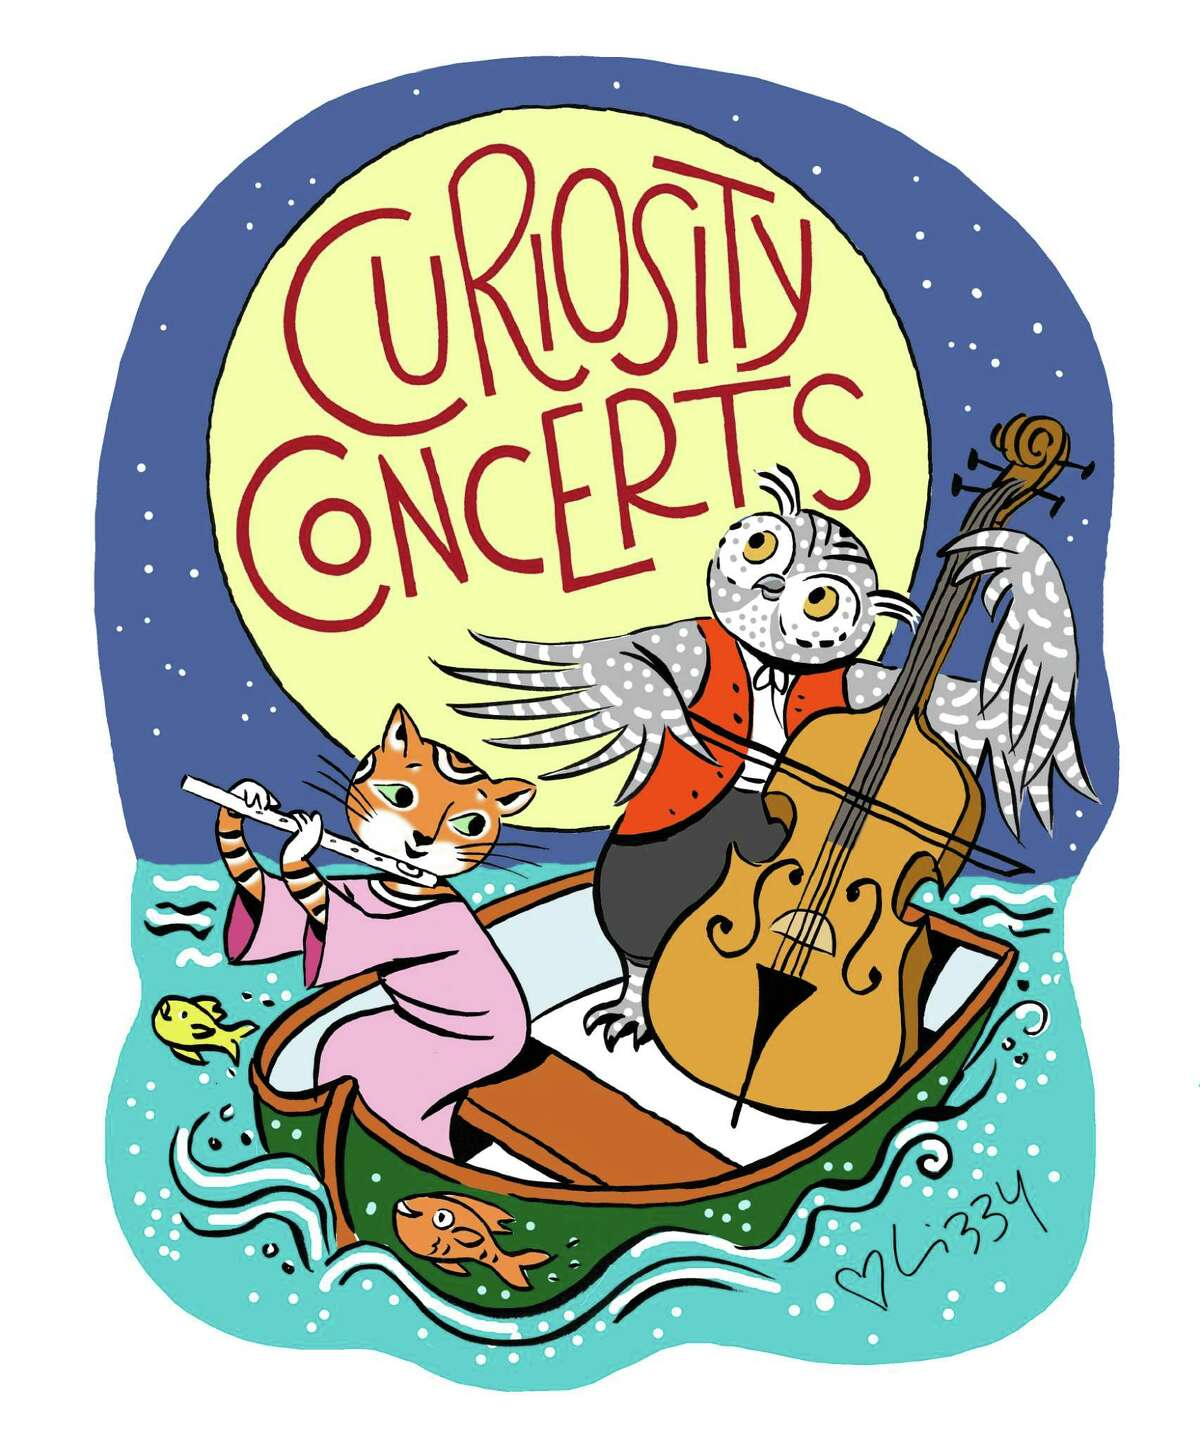 The illustration for Curiosity Concerts created by artist Lizzy Rockwell in the Old Greenwich studio of her parents, Anne and the late Harlow Rockwell.